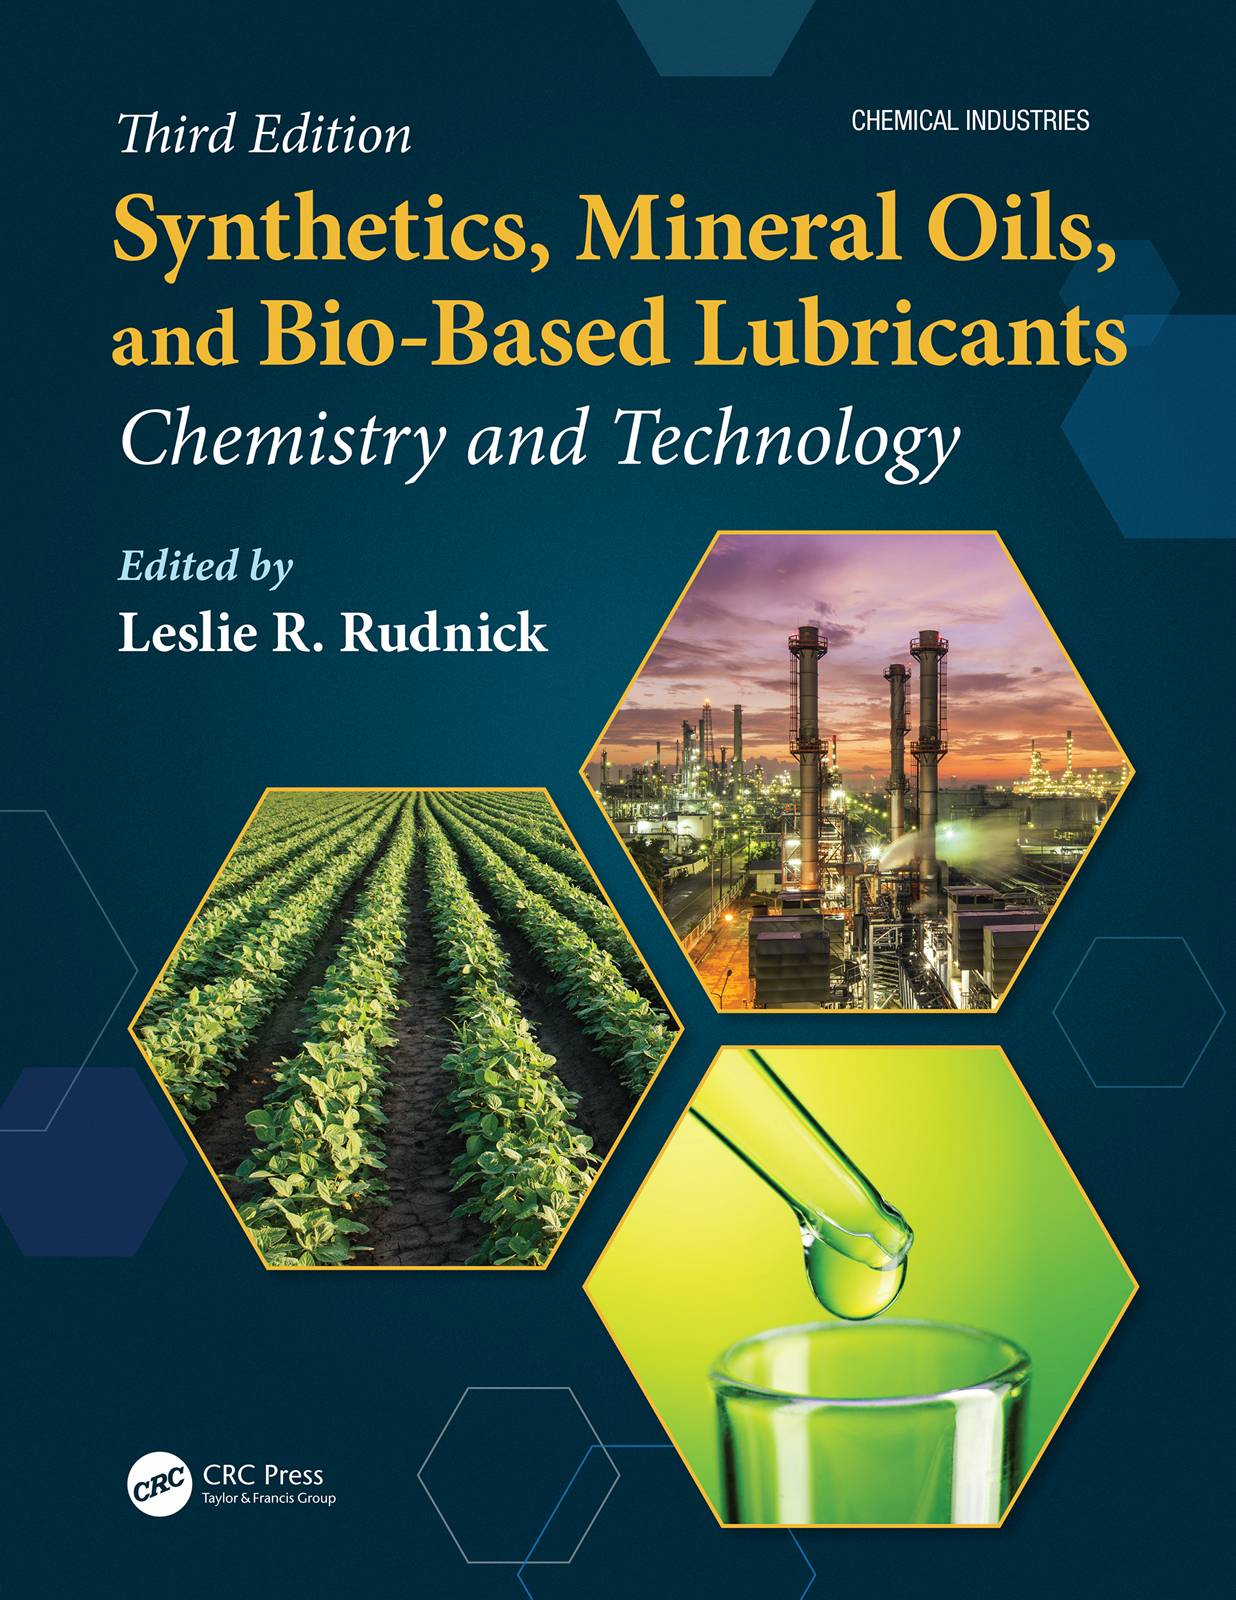 Comparison of Synthetic, Mineral Oil, and Bio-Based Lubricant Fluids